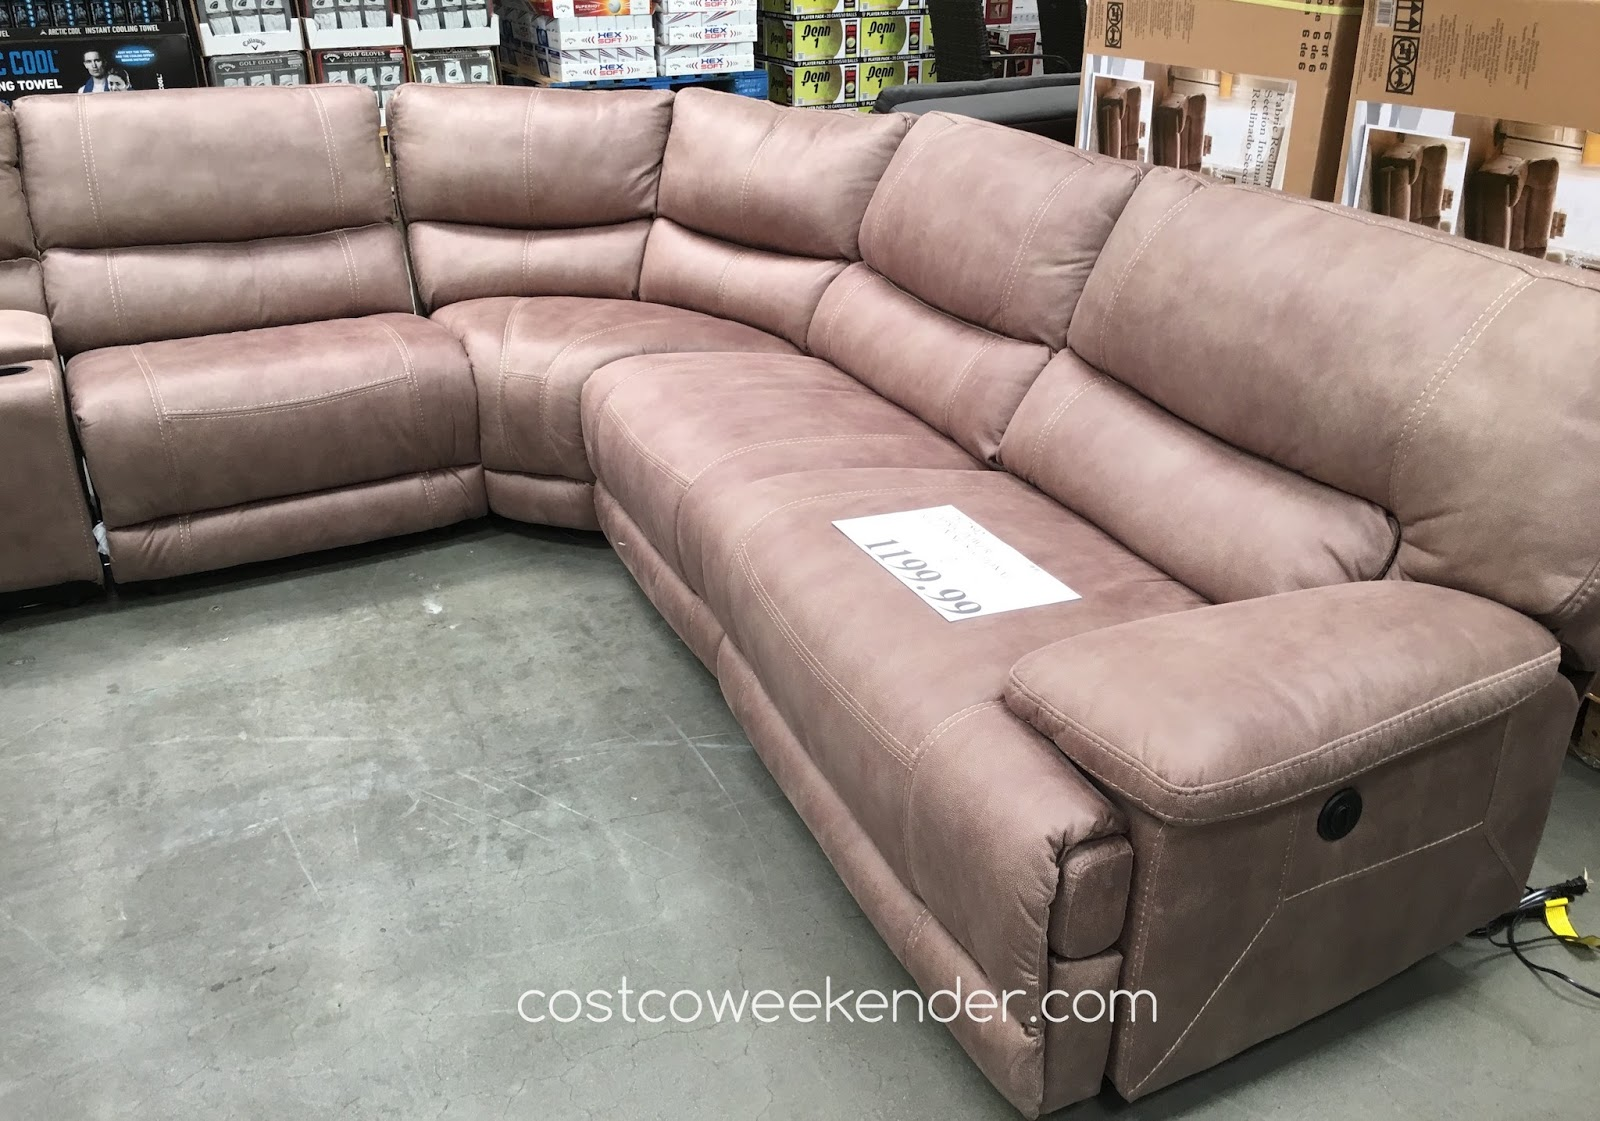 Fabric Power Reclining Sectional | Costco Weekender